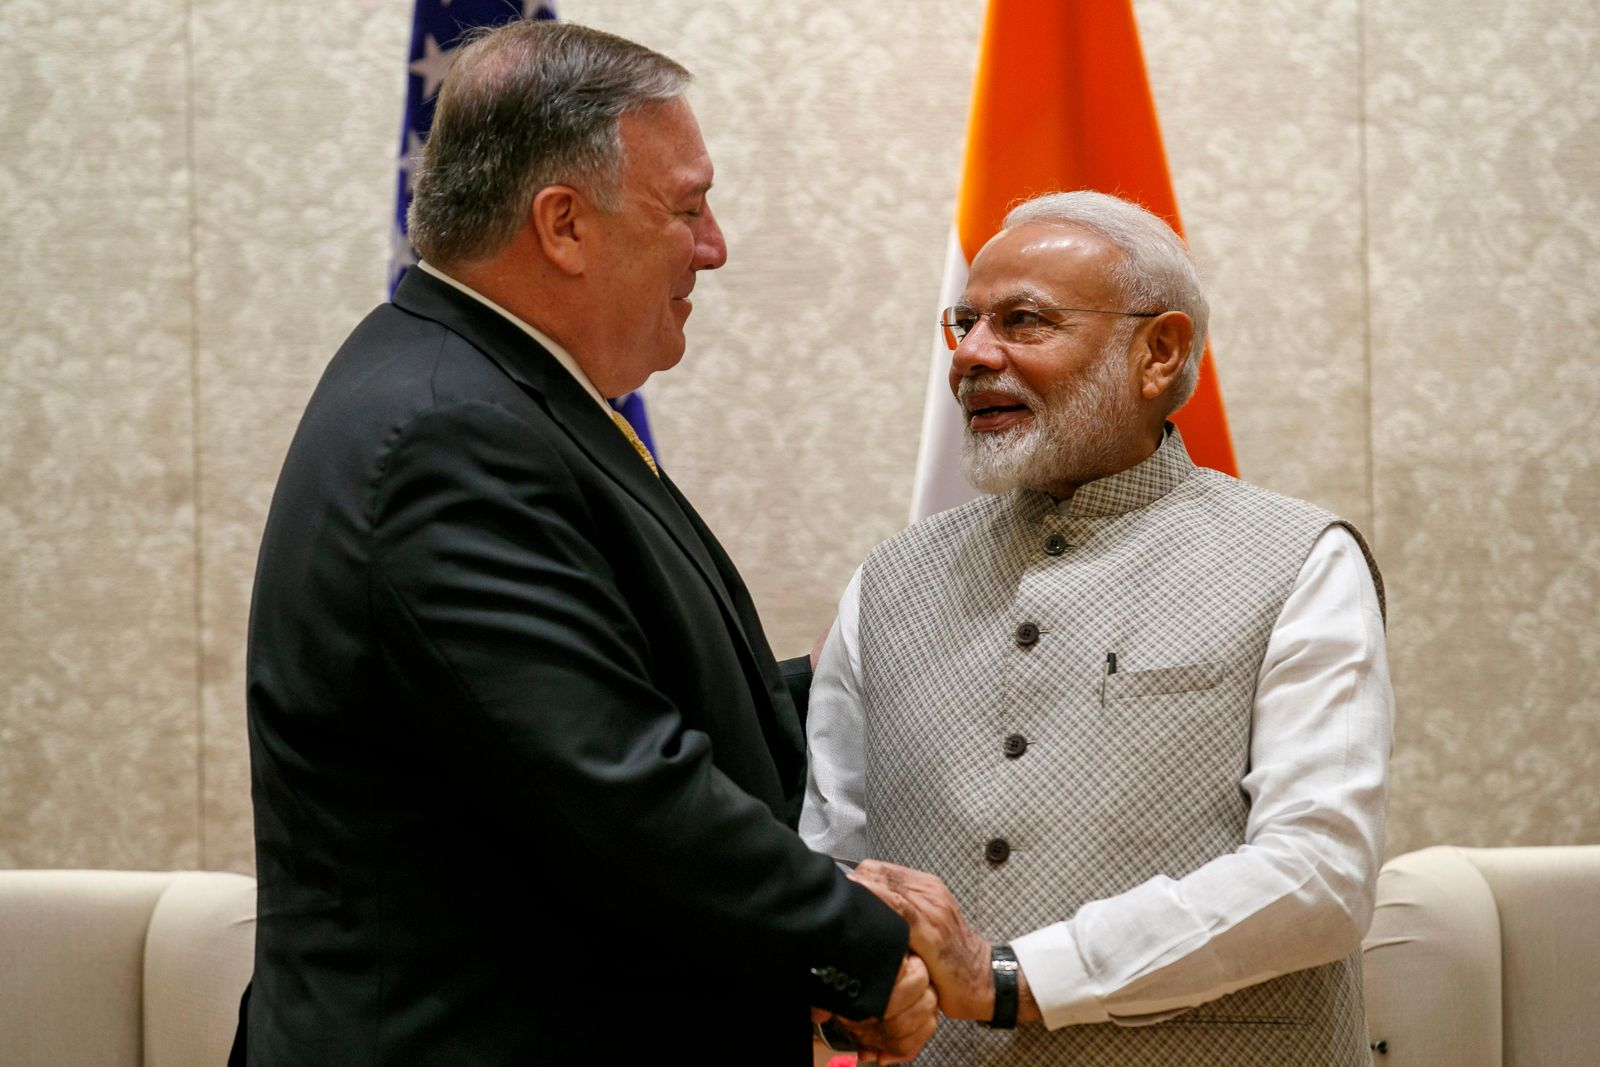 Secretary of State Mike Pompeo, left, shakes hands with Indian Prime Minister Narendra Modi, during their meeting at the Prime Minister's Residence, Wednesday, June 26, 2019, in New Delhi, India. (AP Photo/Jacquelyn Martin, Pool)